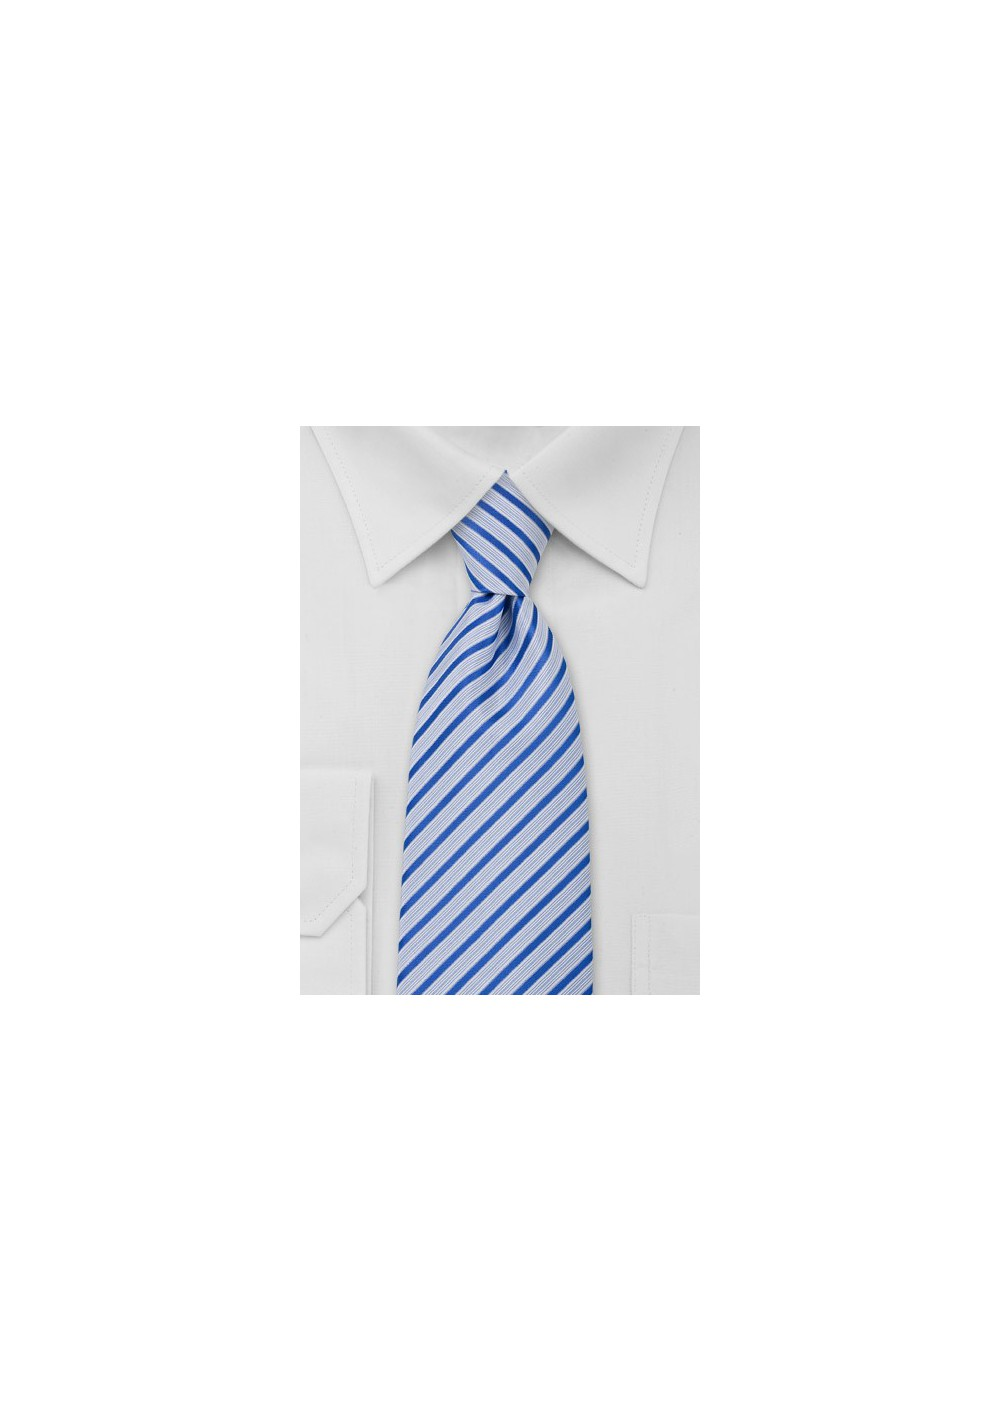 Striped Necktie in Light Blue White